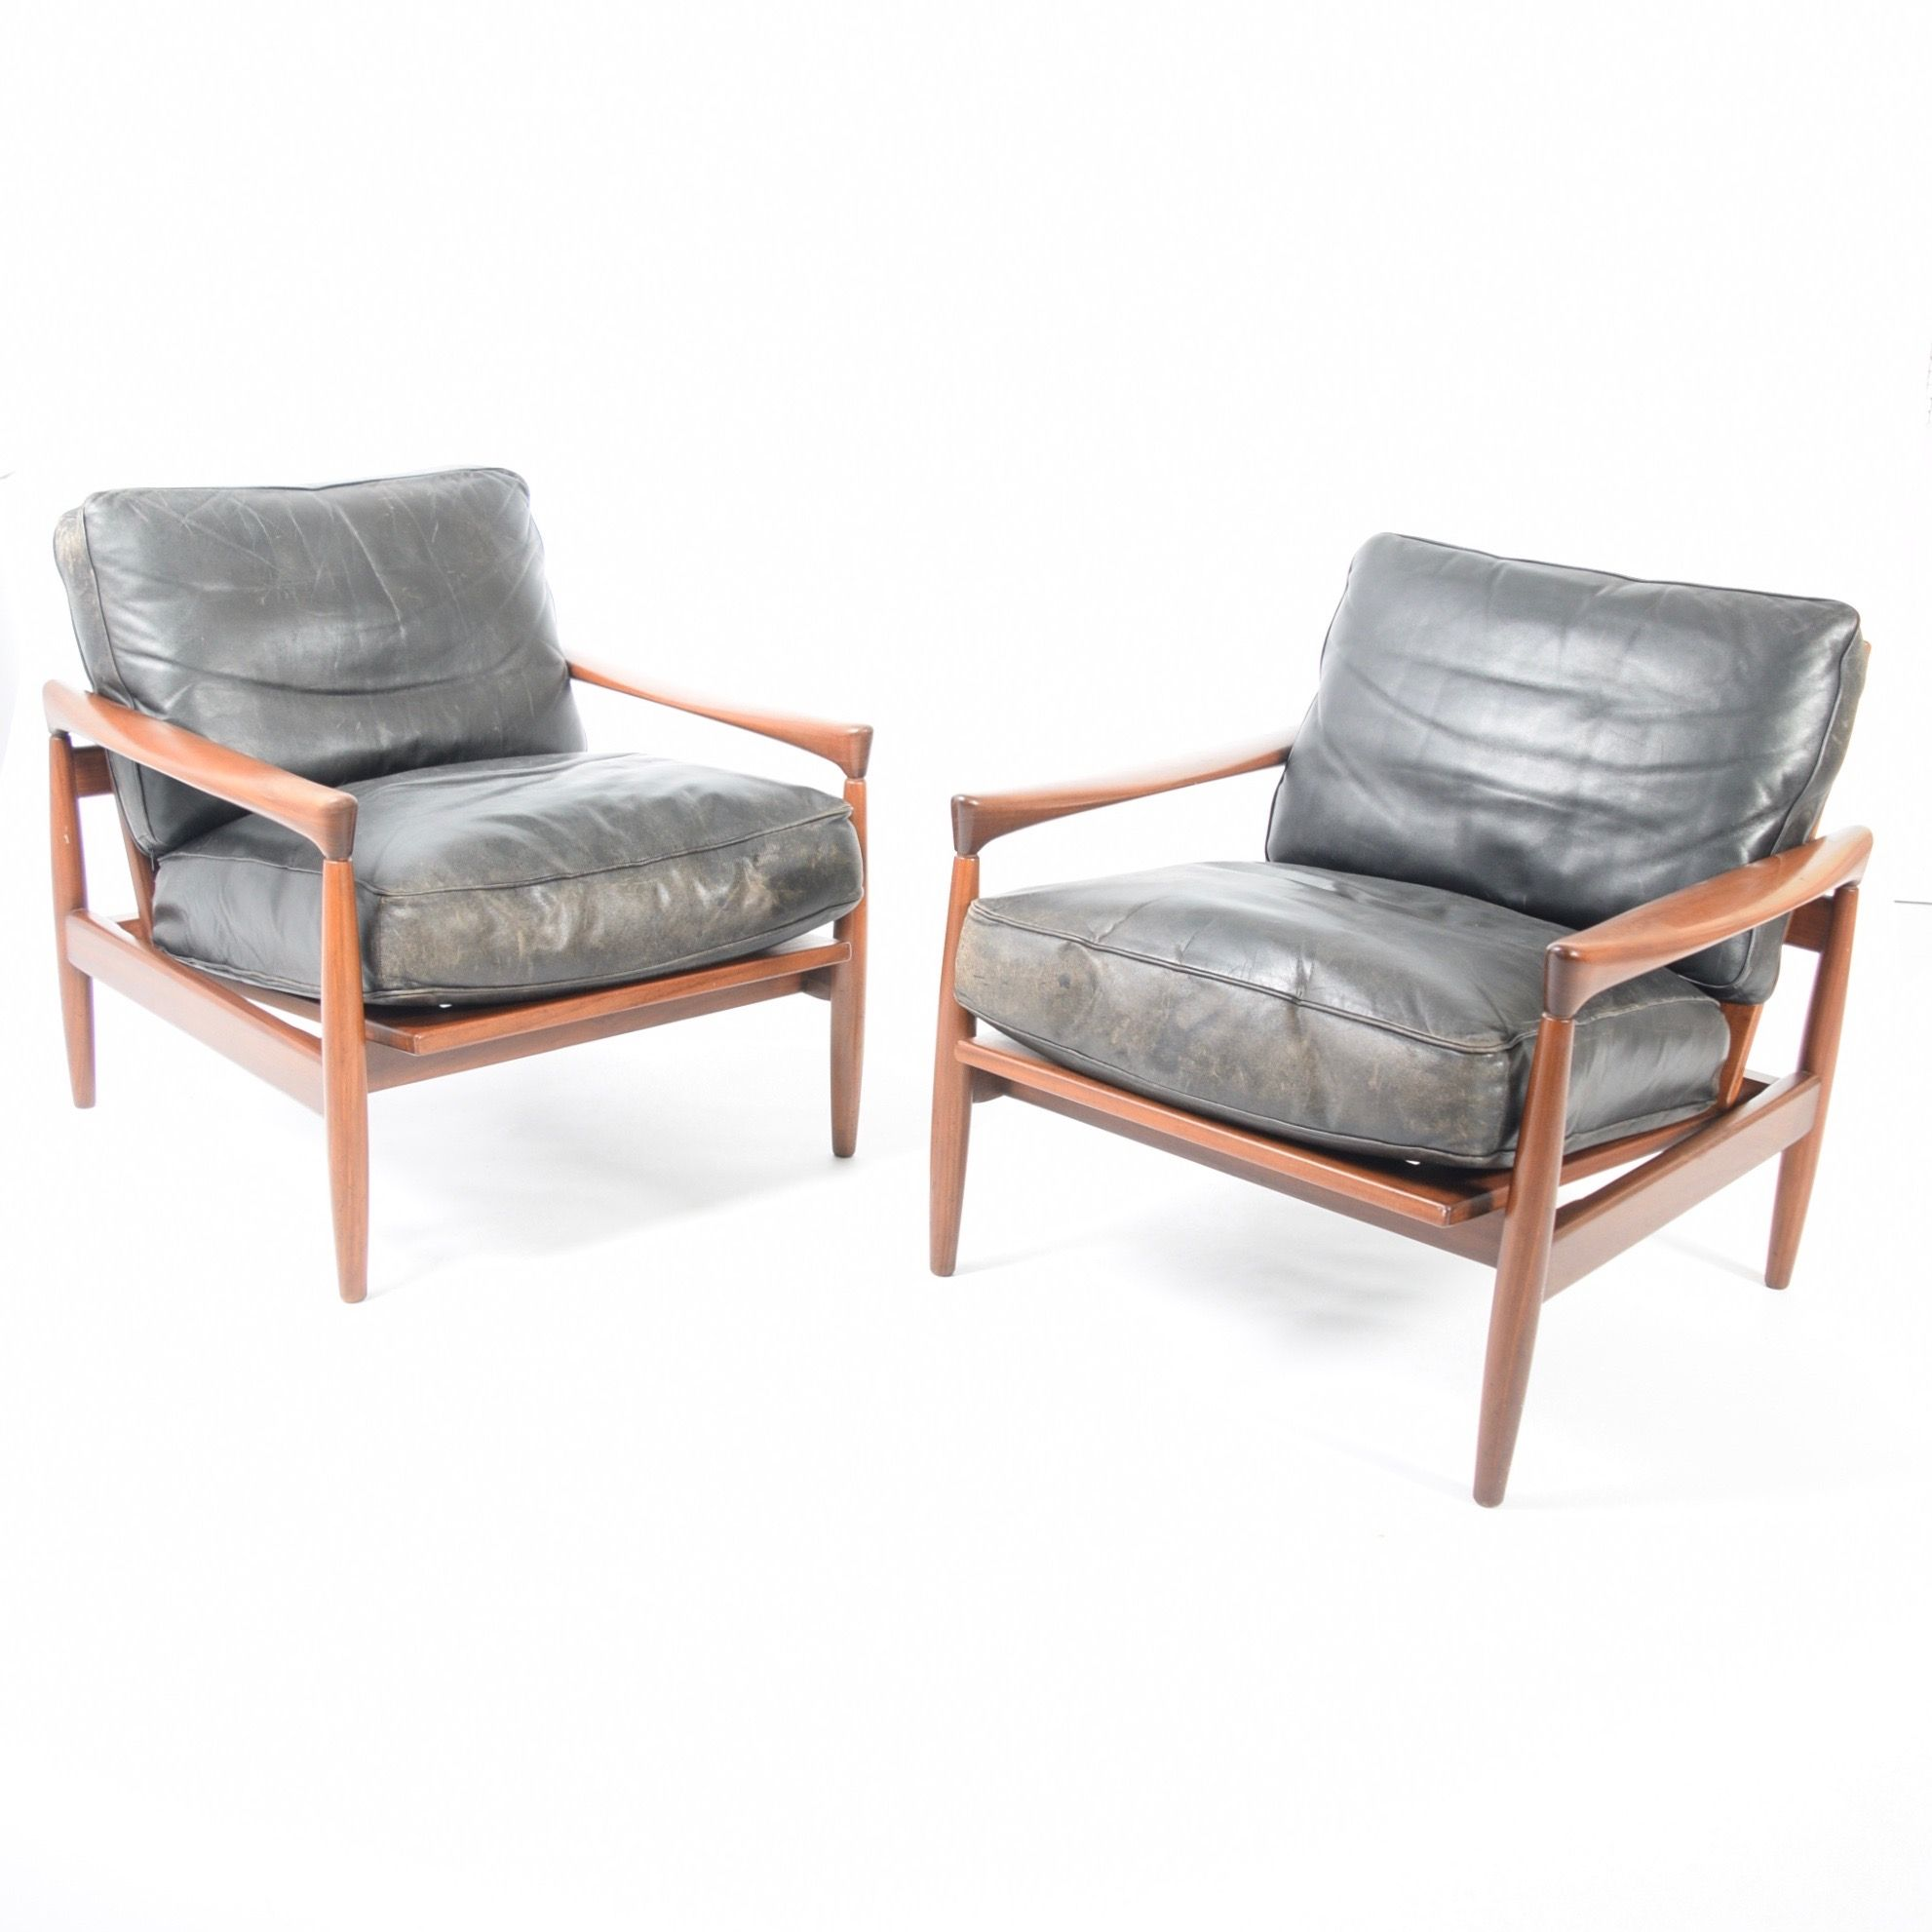 Salon Jardin Modulable Best Of Pair Of Kolding Lounge Chairs by Erik W¸rts for Ikea 1960s Of 32 Beau Salon Jardin Modulable